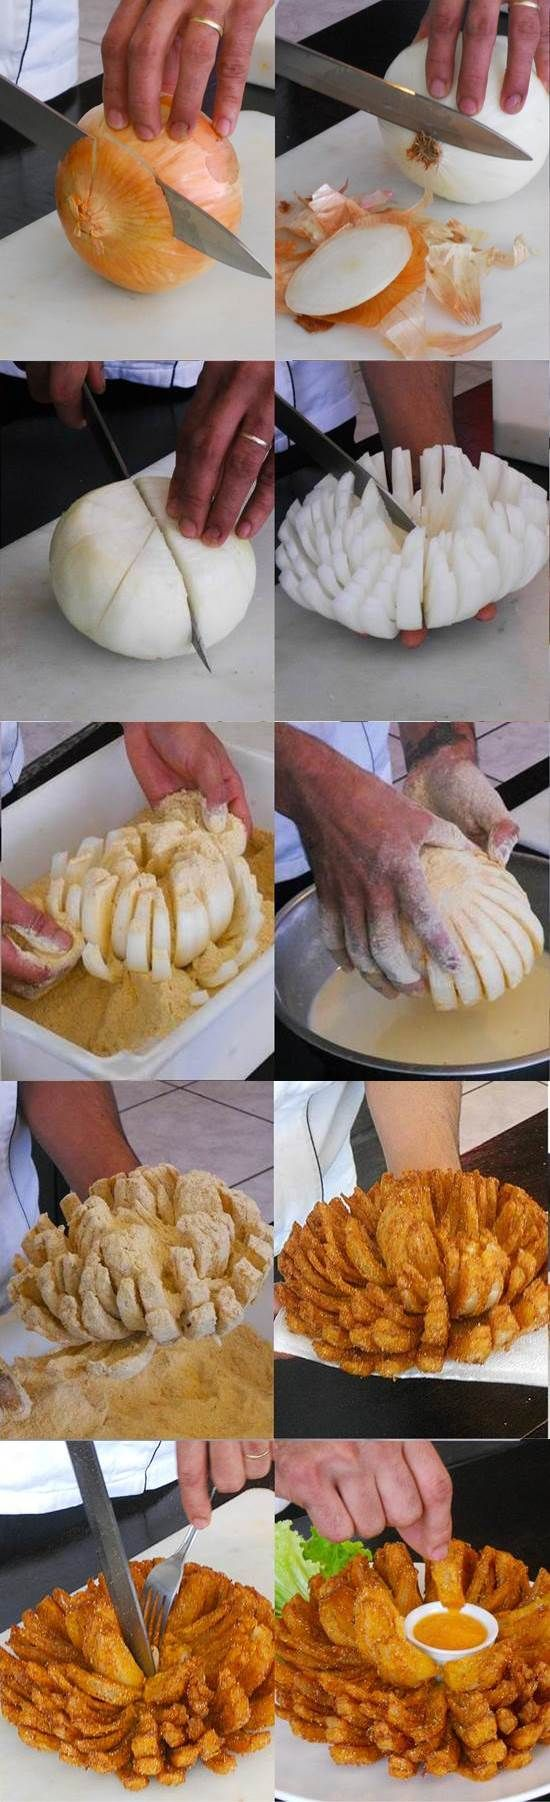 how to cut a blooming onion video